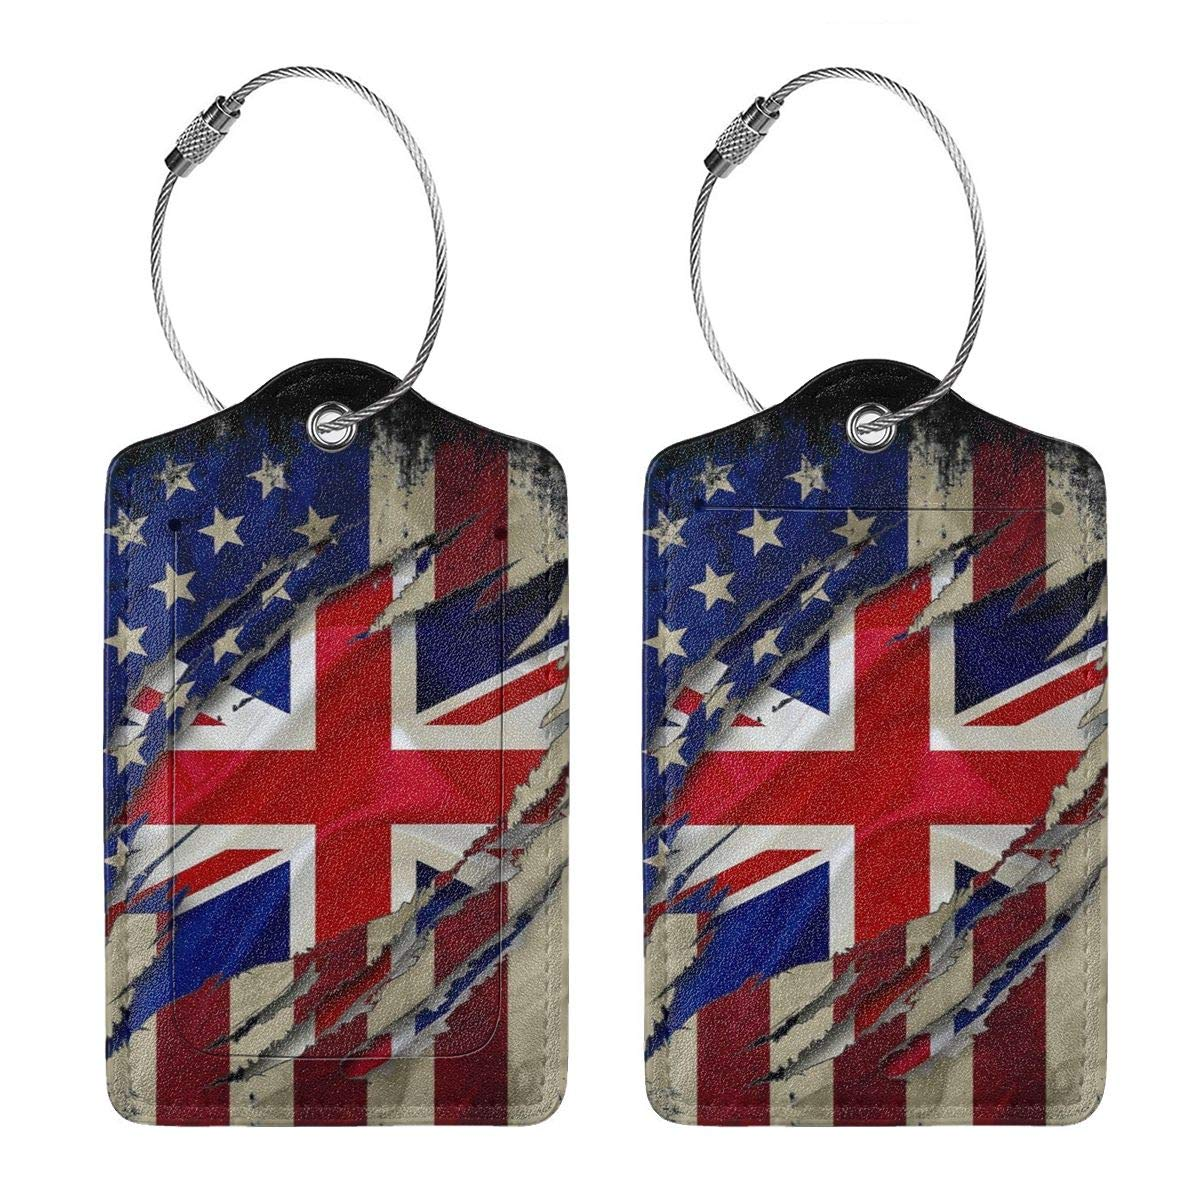 GoldK British English American Flag Leather Luggage Tags Baggage Bag Instrument Tag Travel Labels Accessories with Privacy Cover